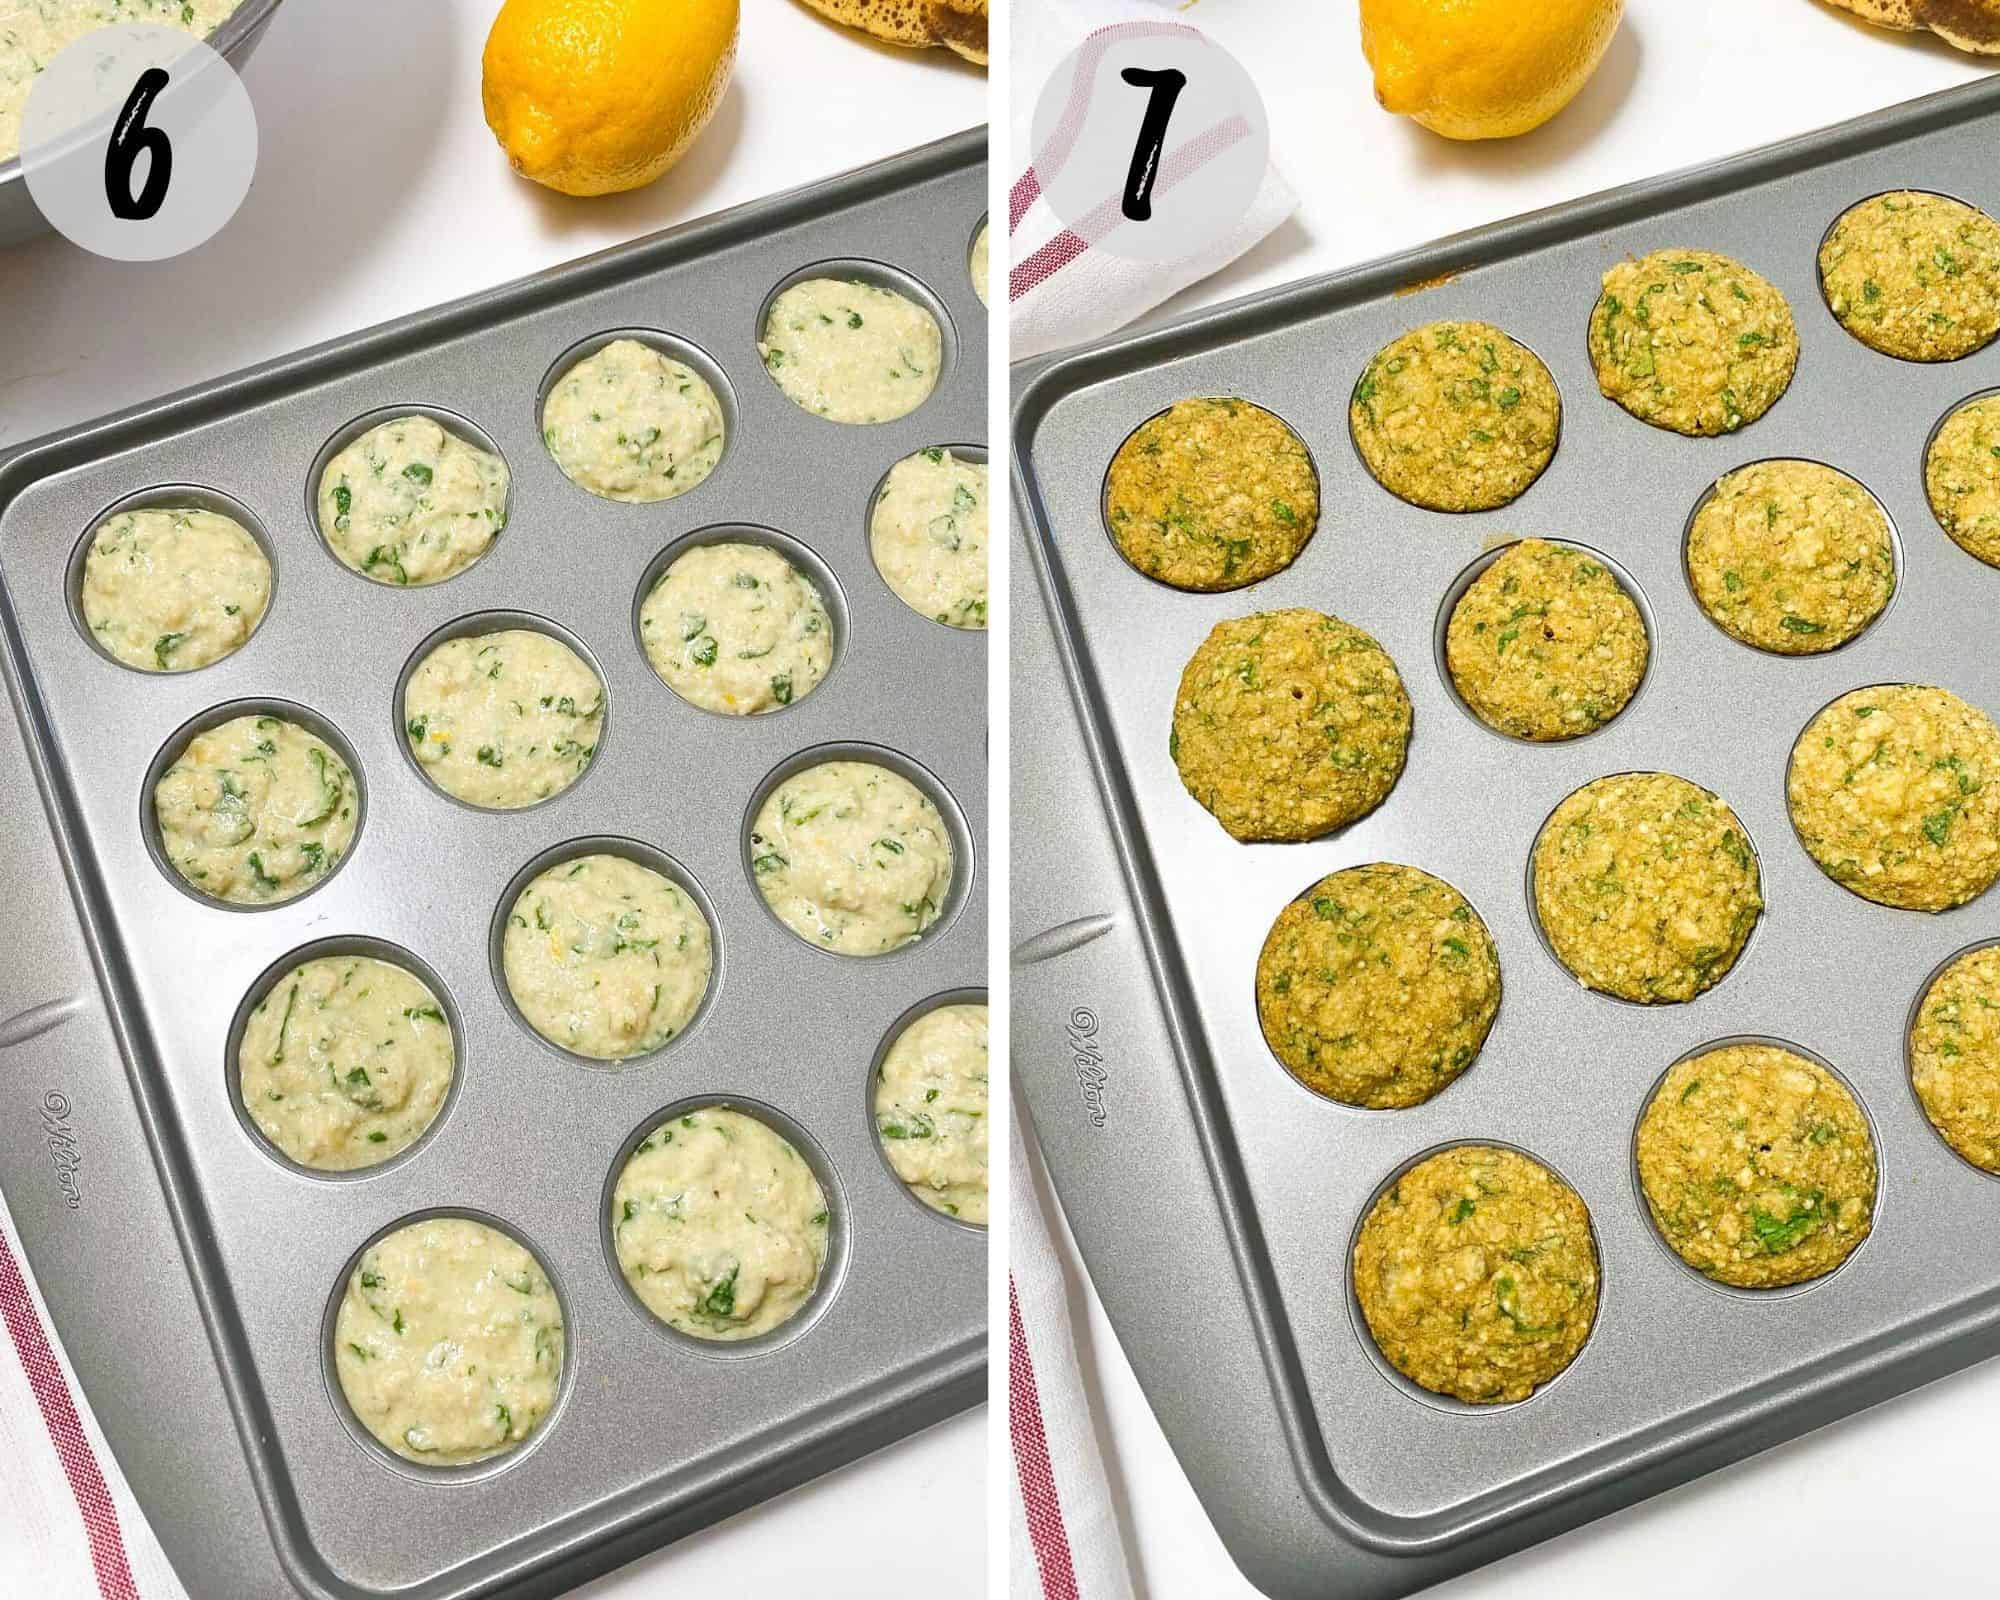 mini muffins in baking pan before and after cooking